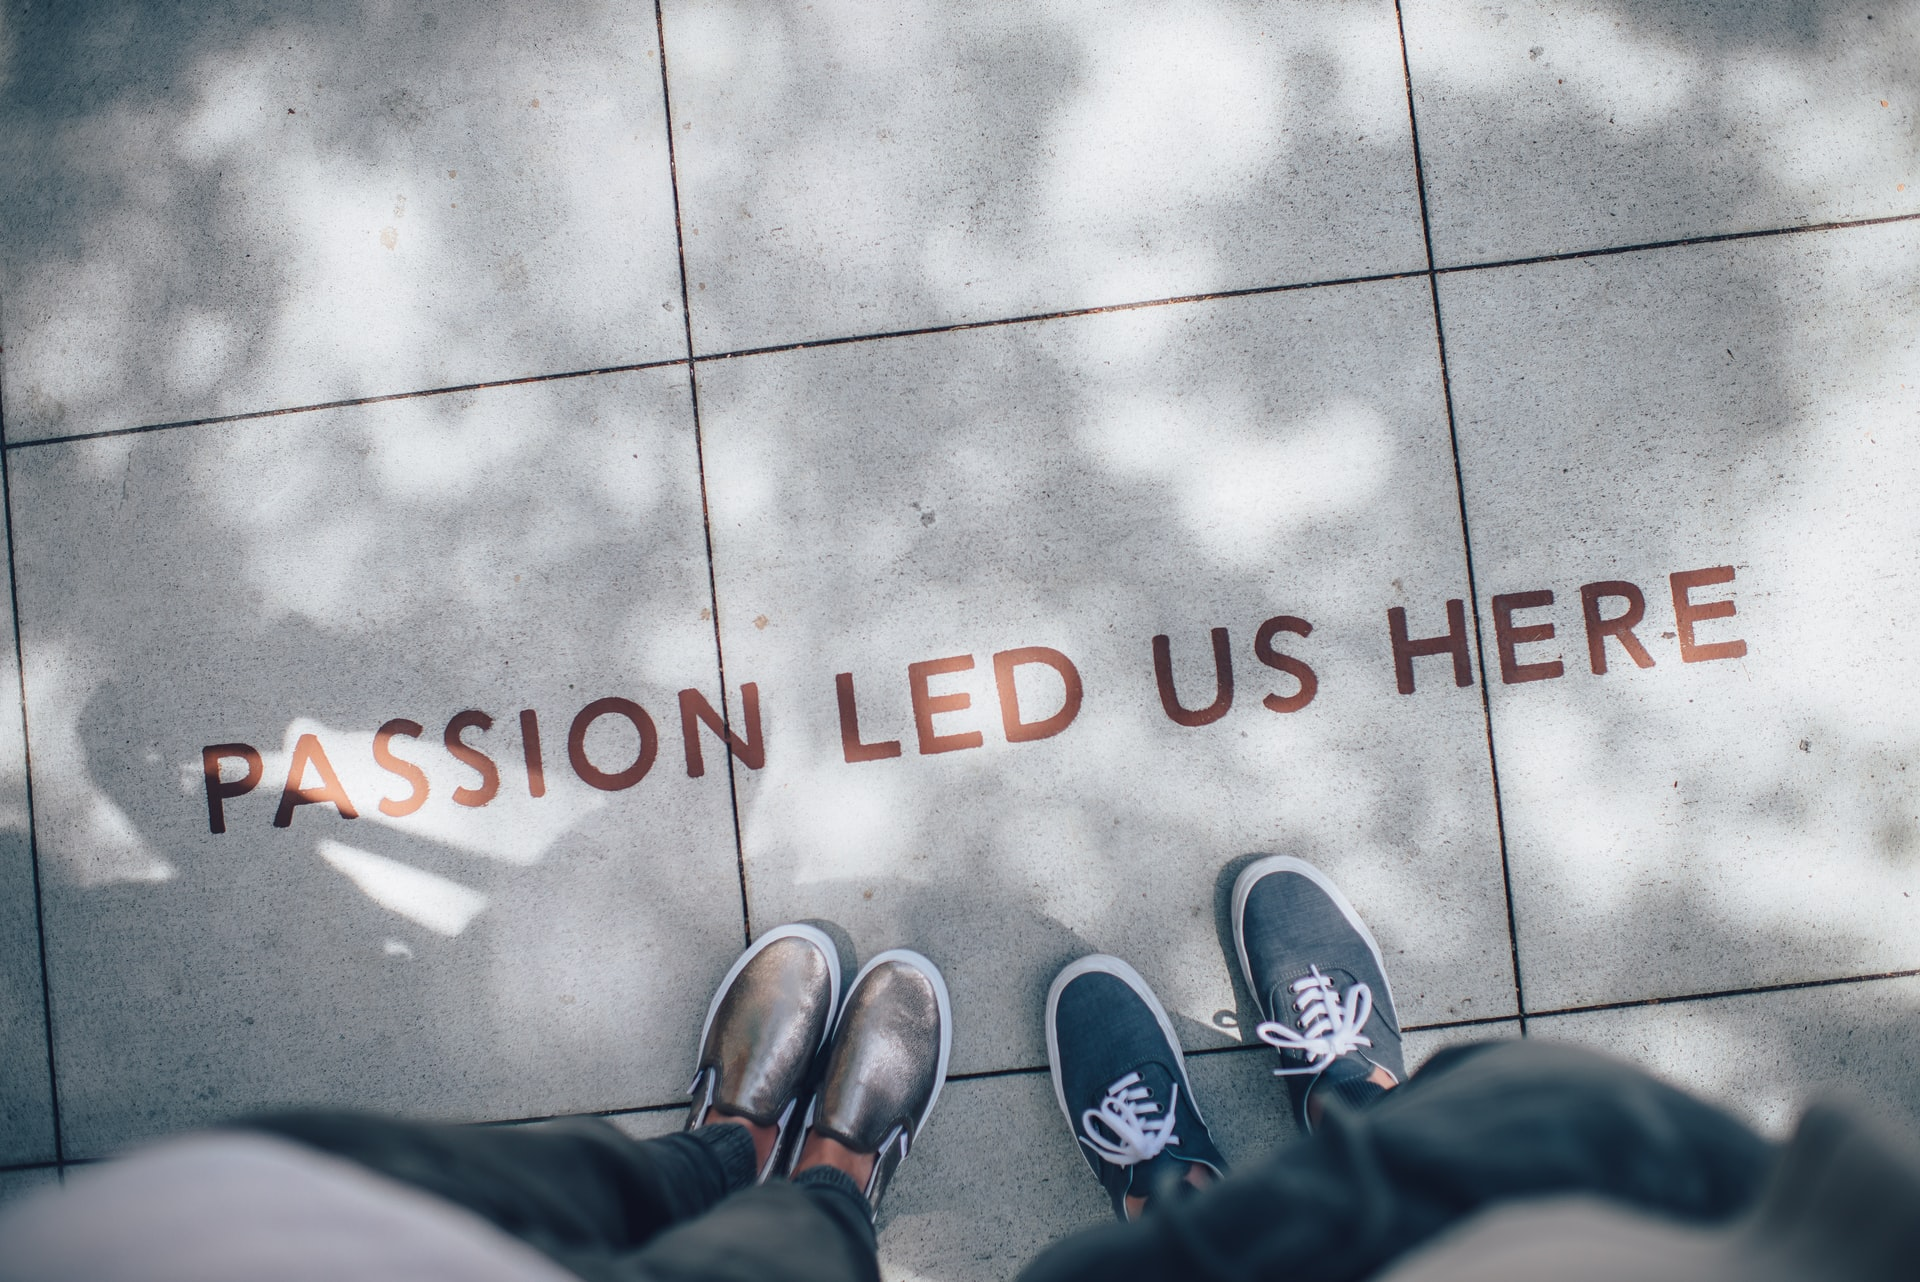 """overhead shot of two people's feet standing by words on a sidewalk, """"Passion led us here"""""""